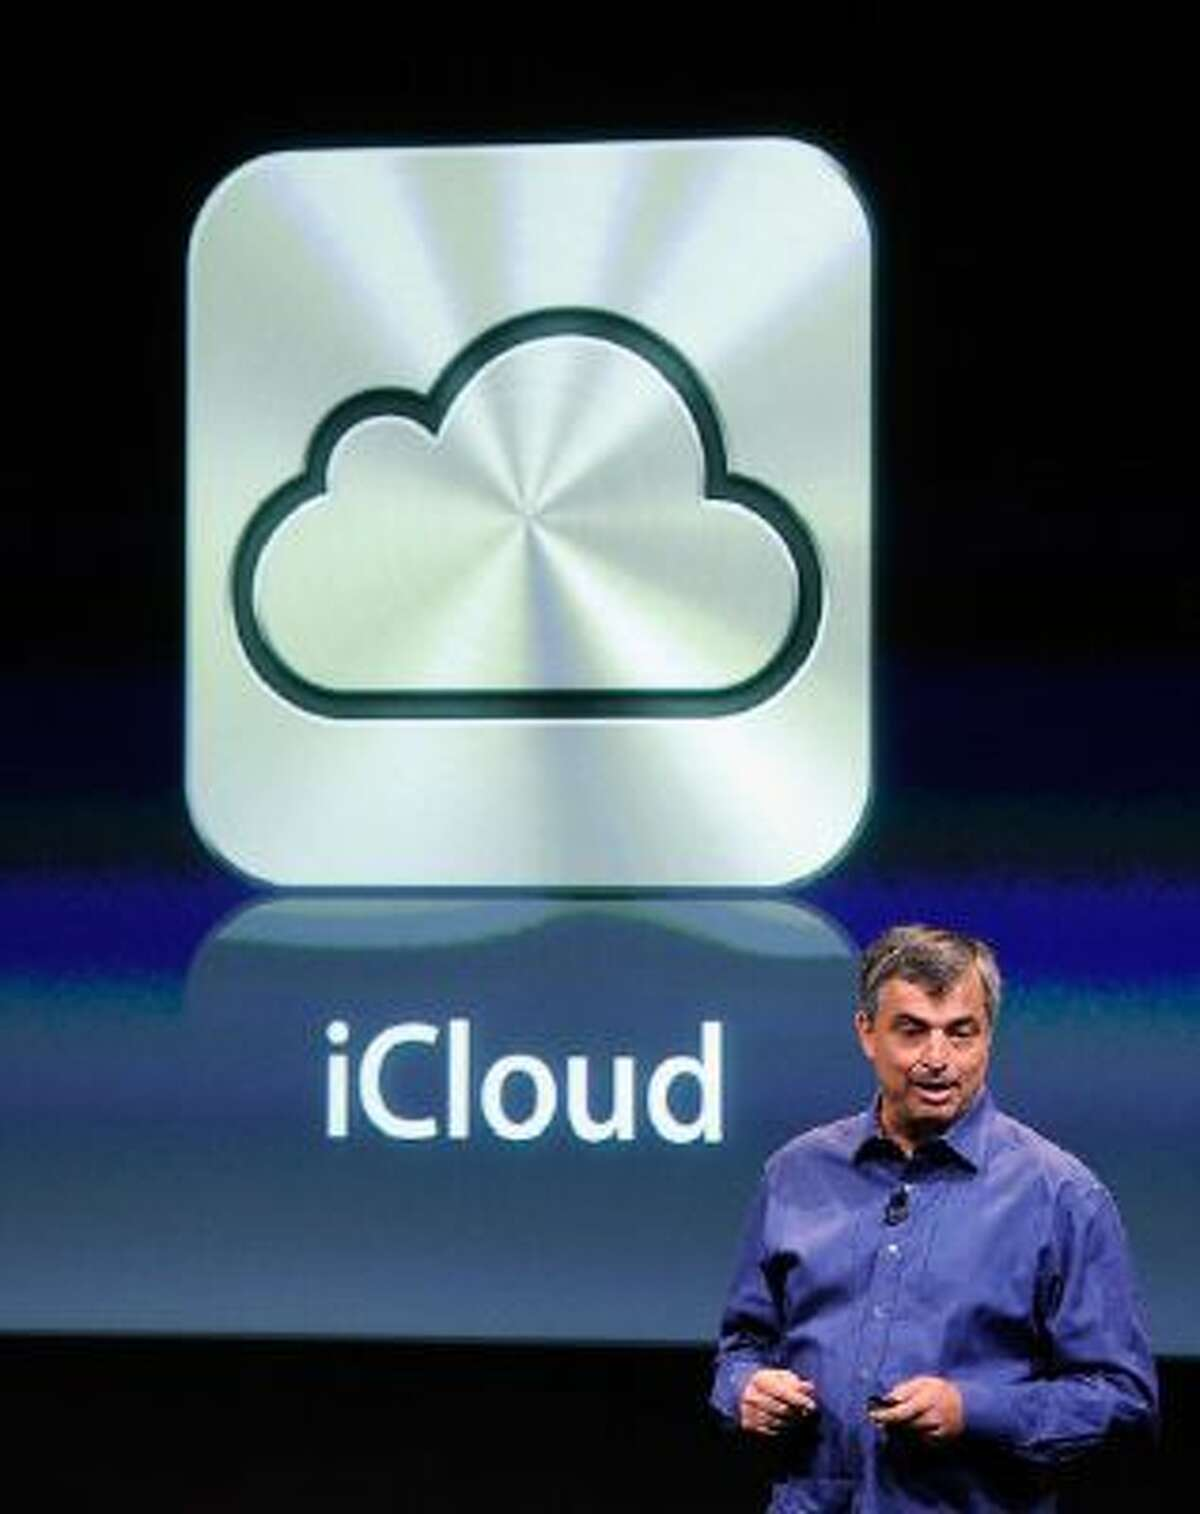 Apple's senior vice president of Internet Software and Services Eddy Cue speaks about iCloud